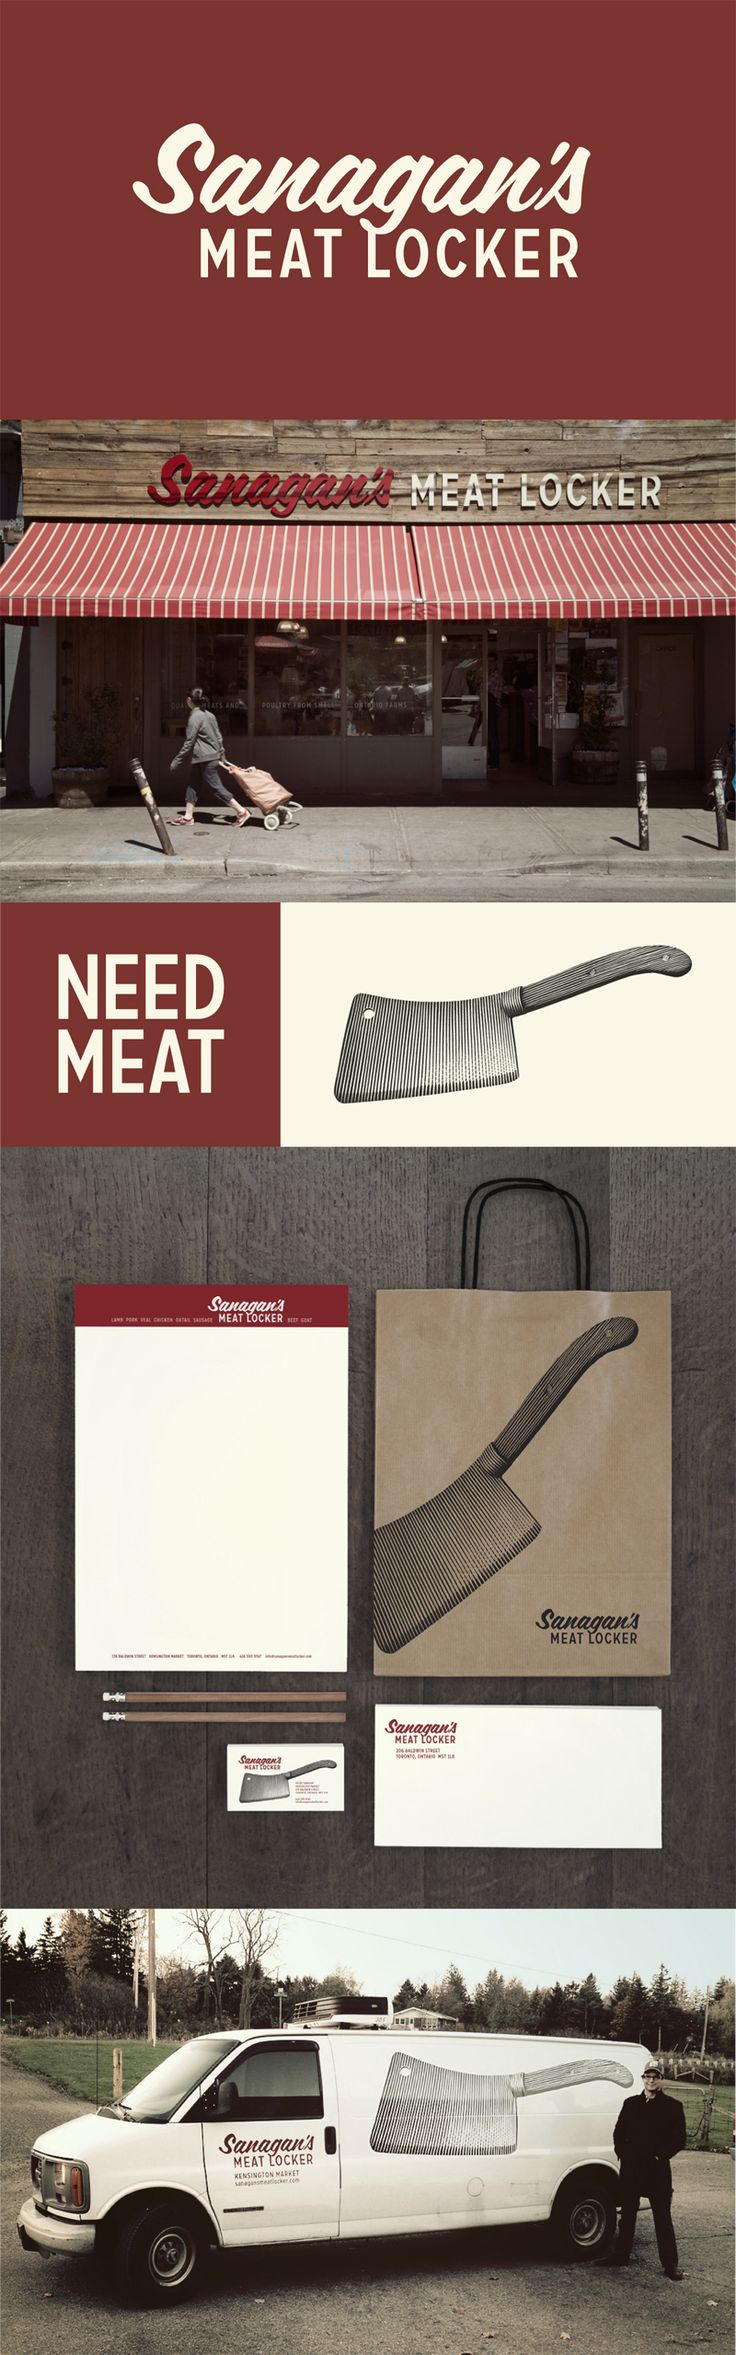 Sanagan's Meat Locker has earned its reputation as one of the best organic butchers in Toronto. Located in the heart of Kensington Market, the shop has been growing rapidly and has doubled it's size in less than 4 years. As senior designer at Punch & Judy we created an identity, retail experience and website to establish Sanagan's as an old-world butcher shop to play off the surrounding historical and traditional atmosphere of Kensington Market. haveyoumetjanet.ca